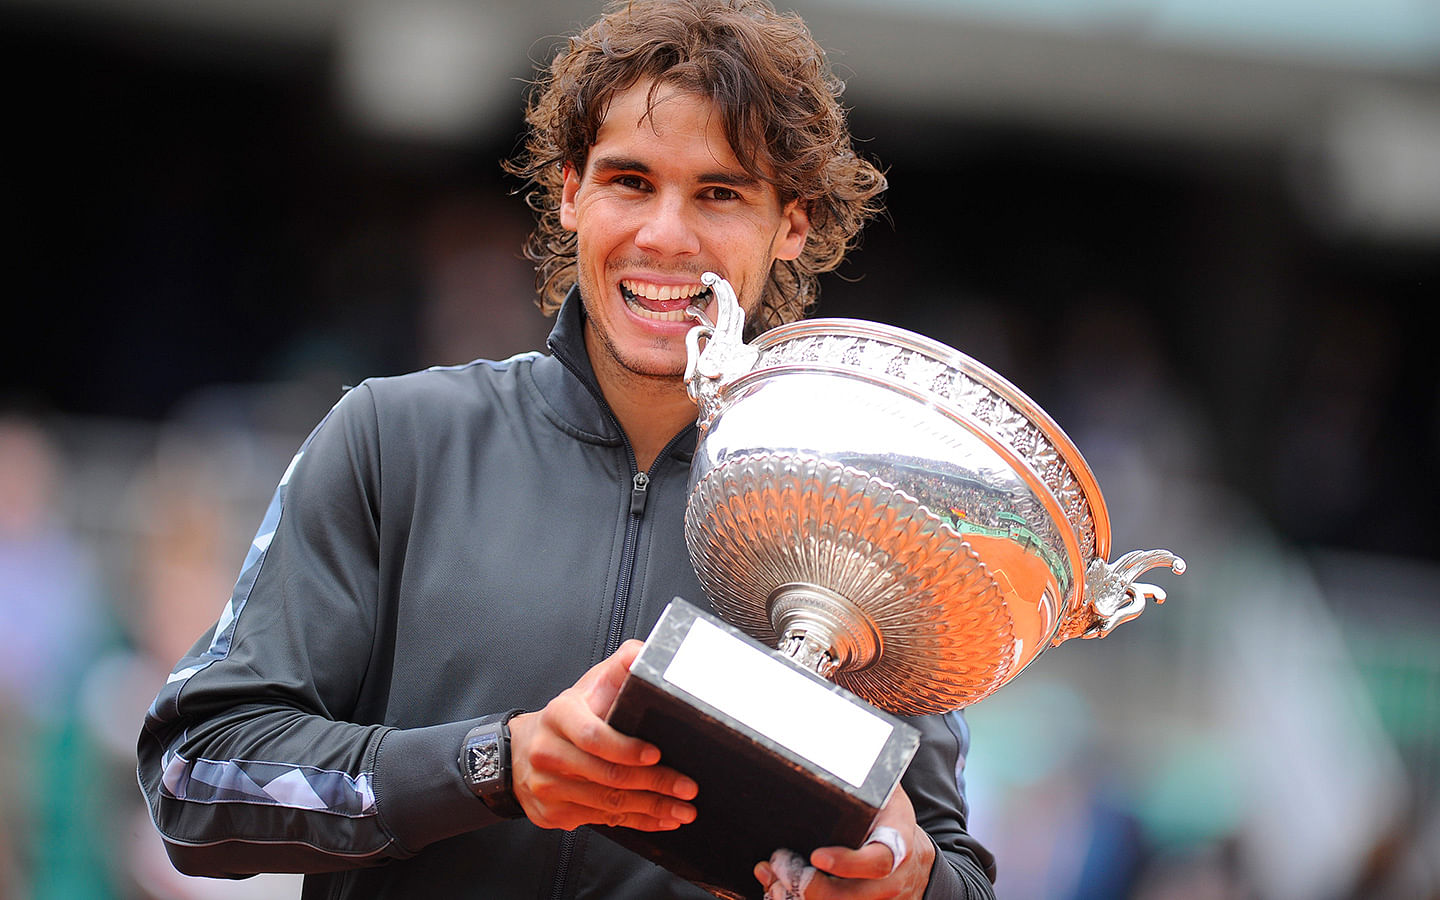 Rafael Nadal's tryst with Roland Garros